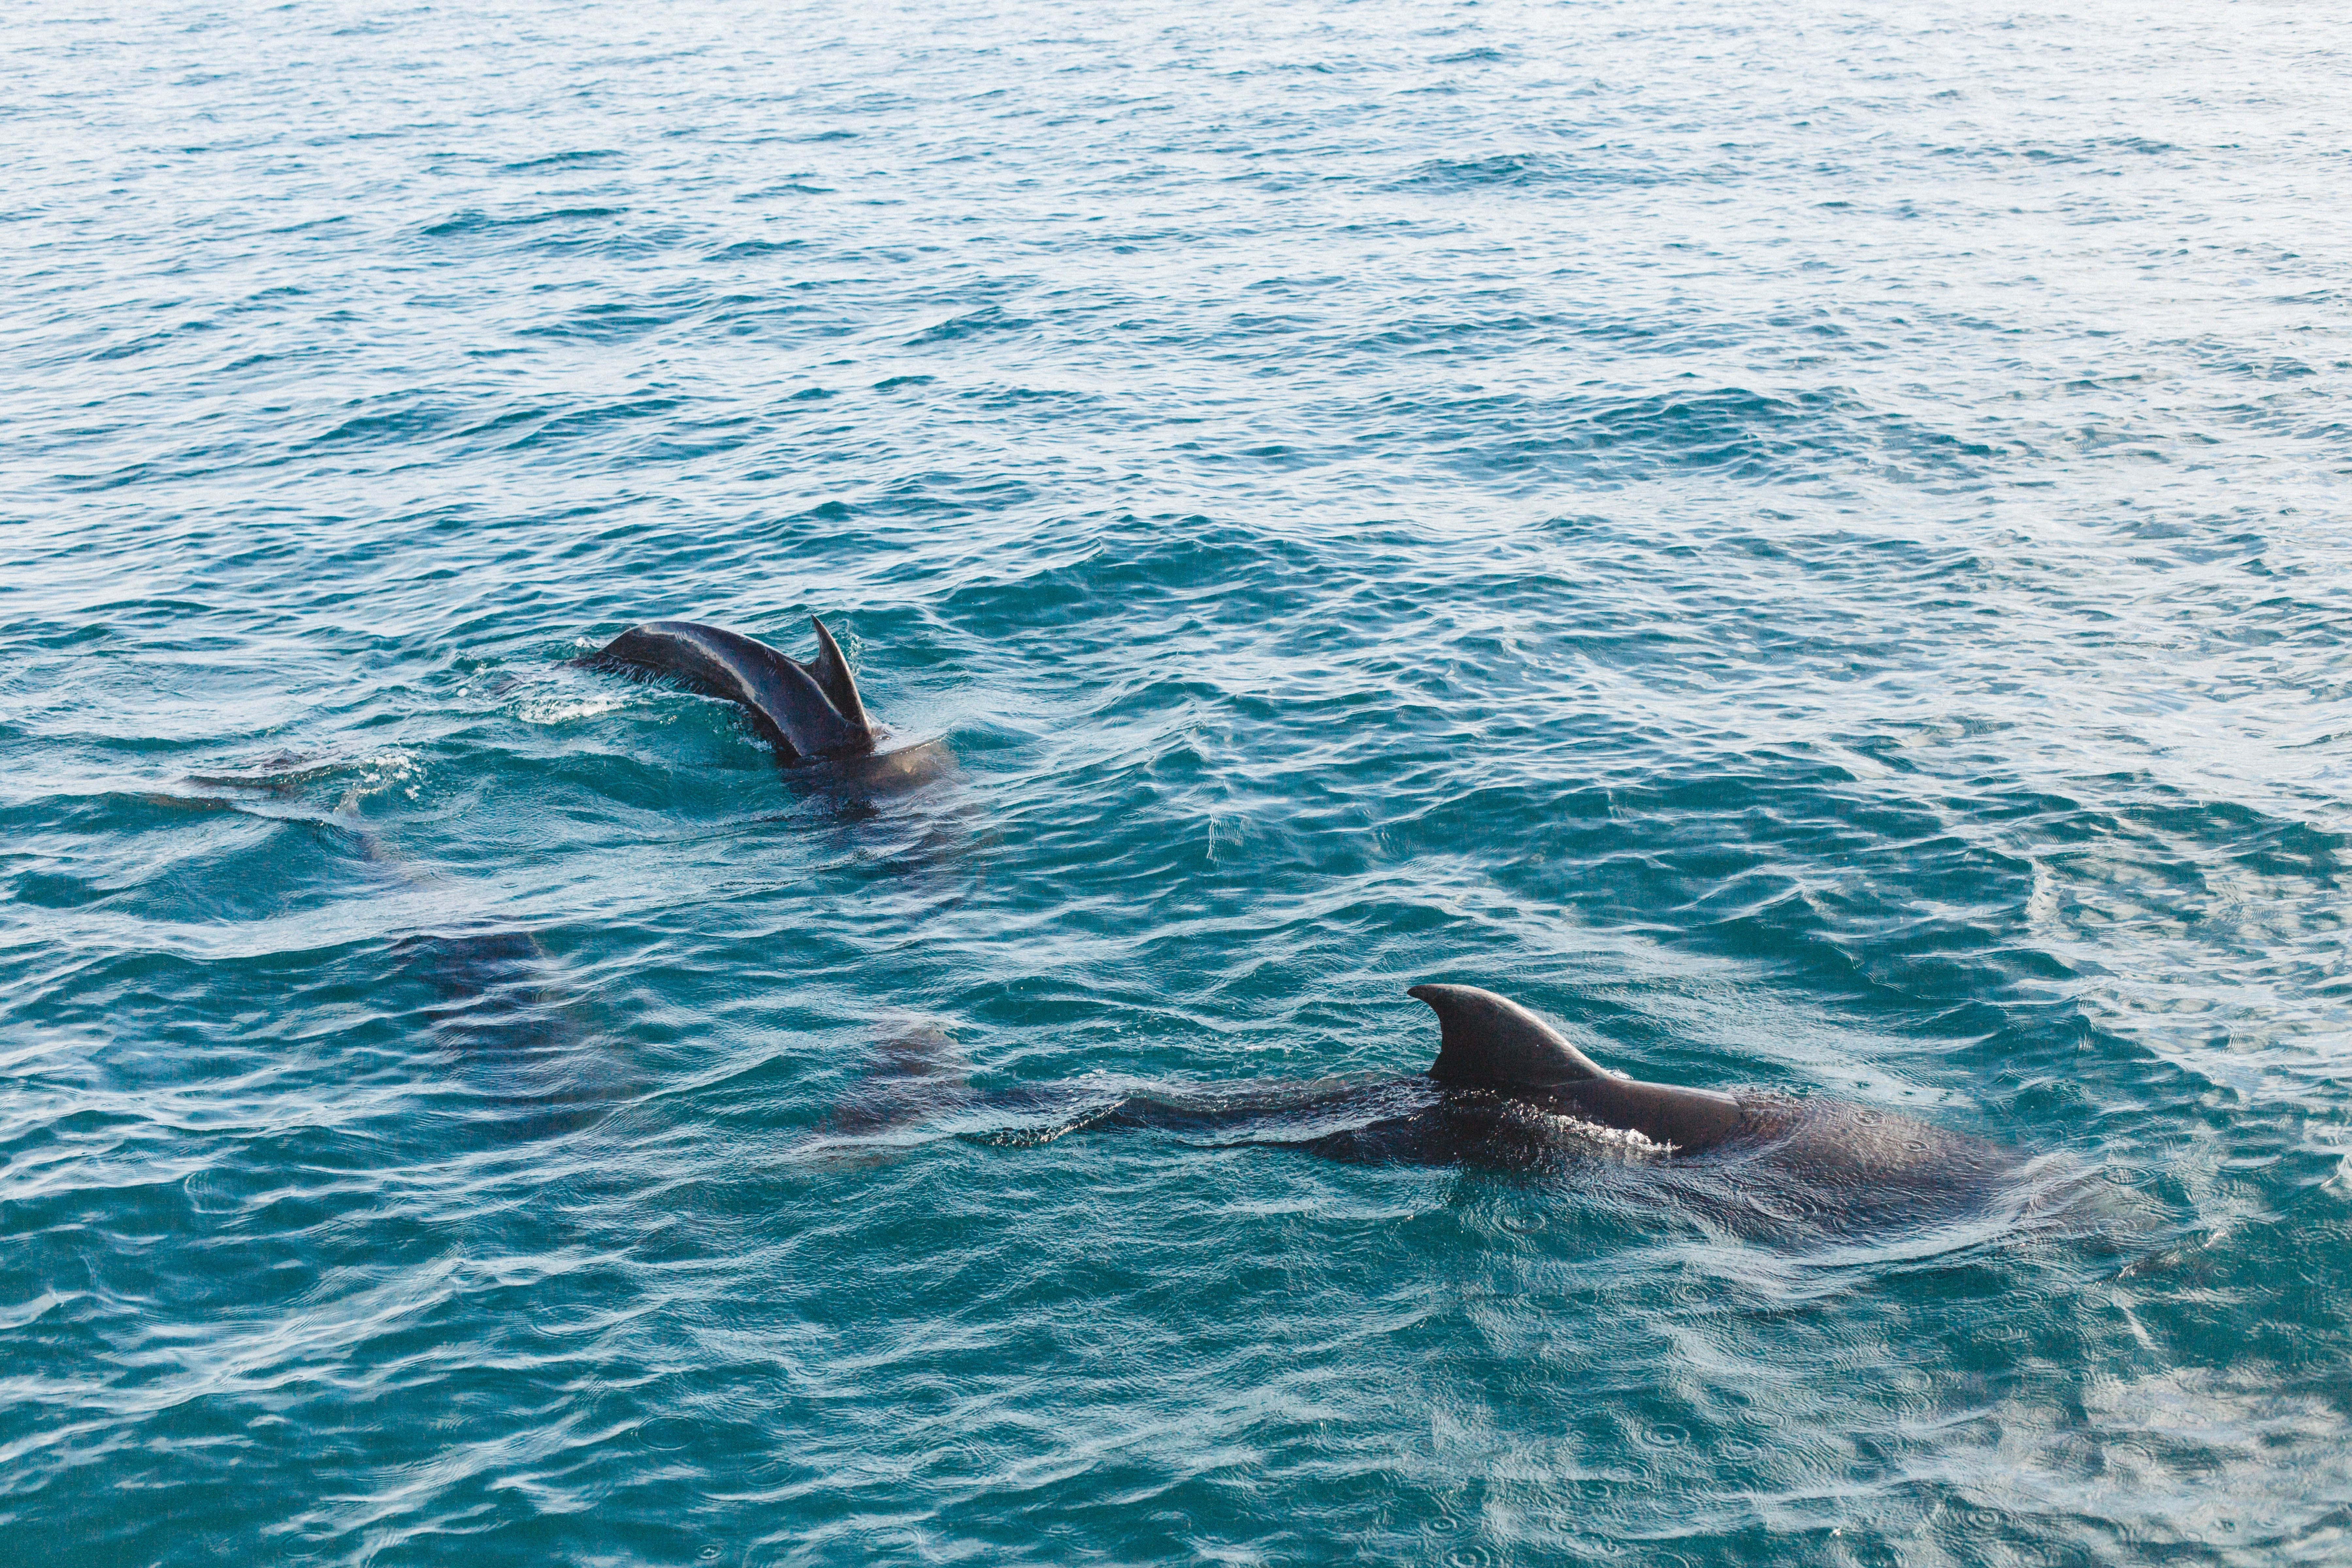 two black dolphins surfacing on turquoise water during daytime